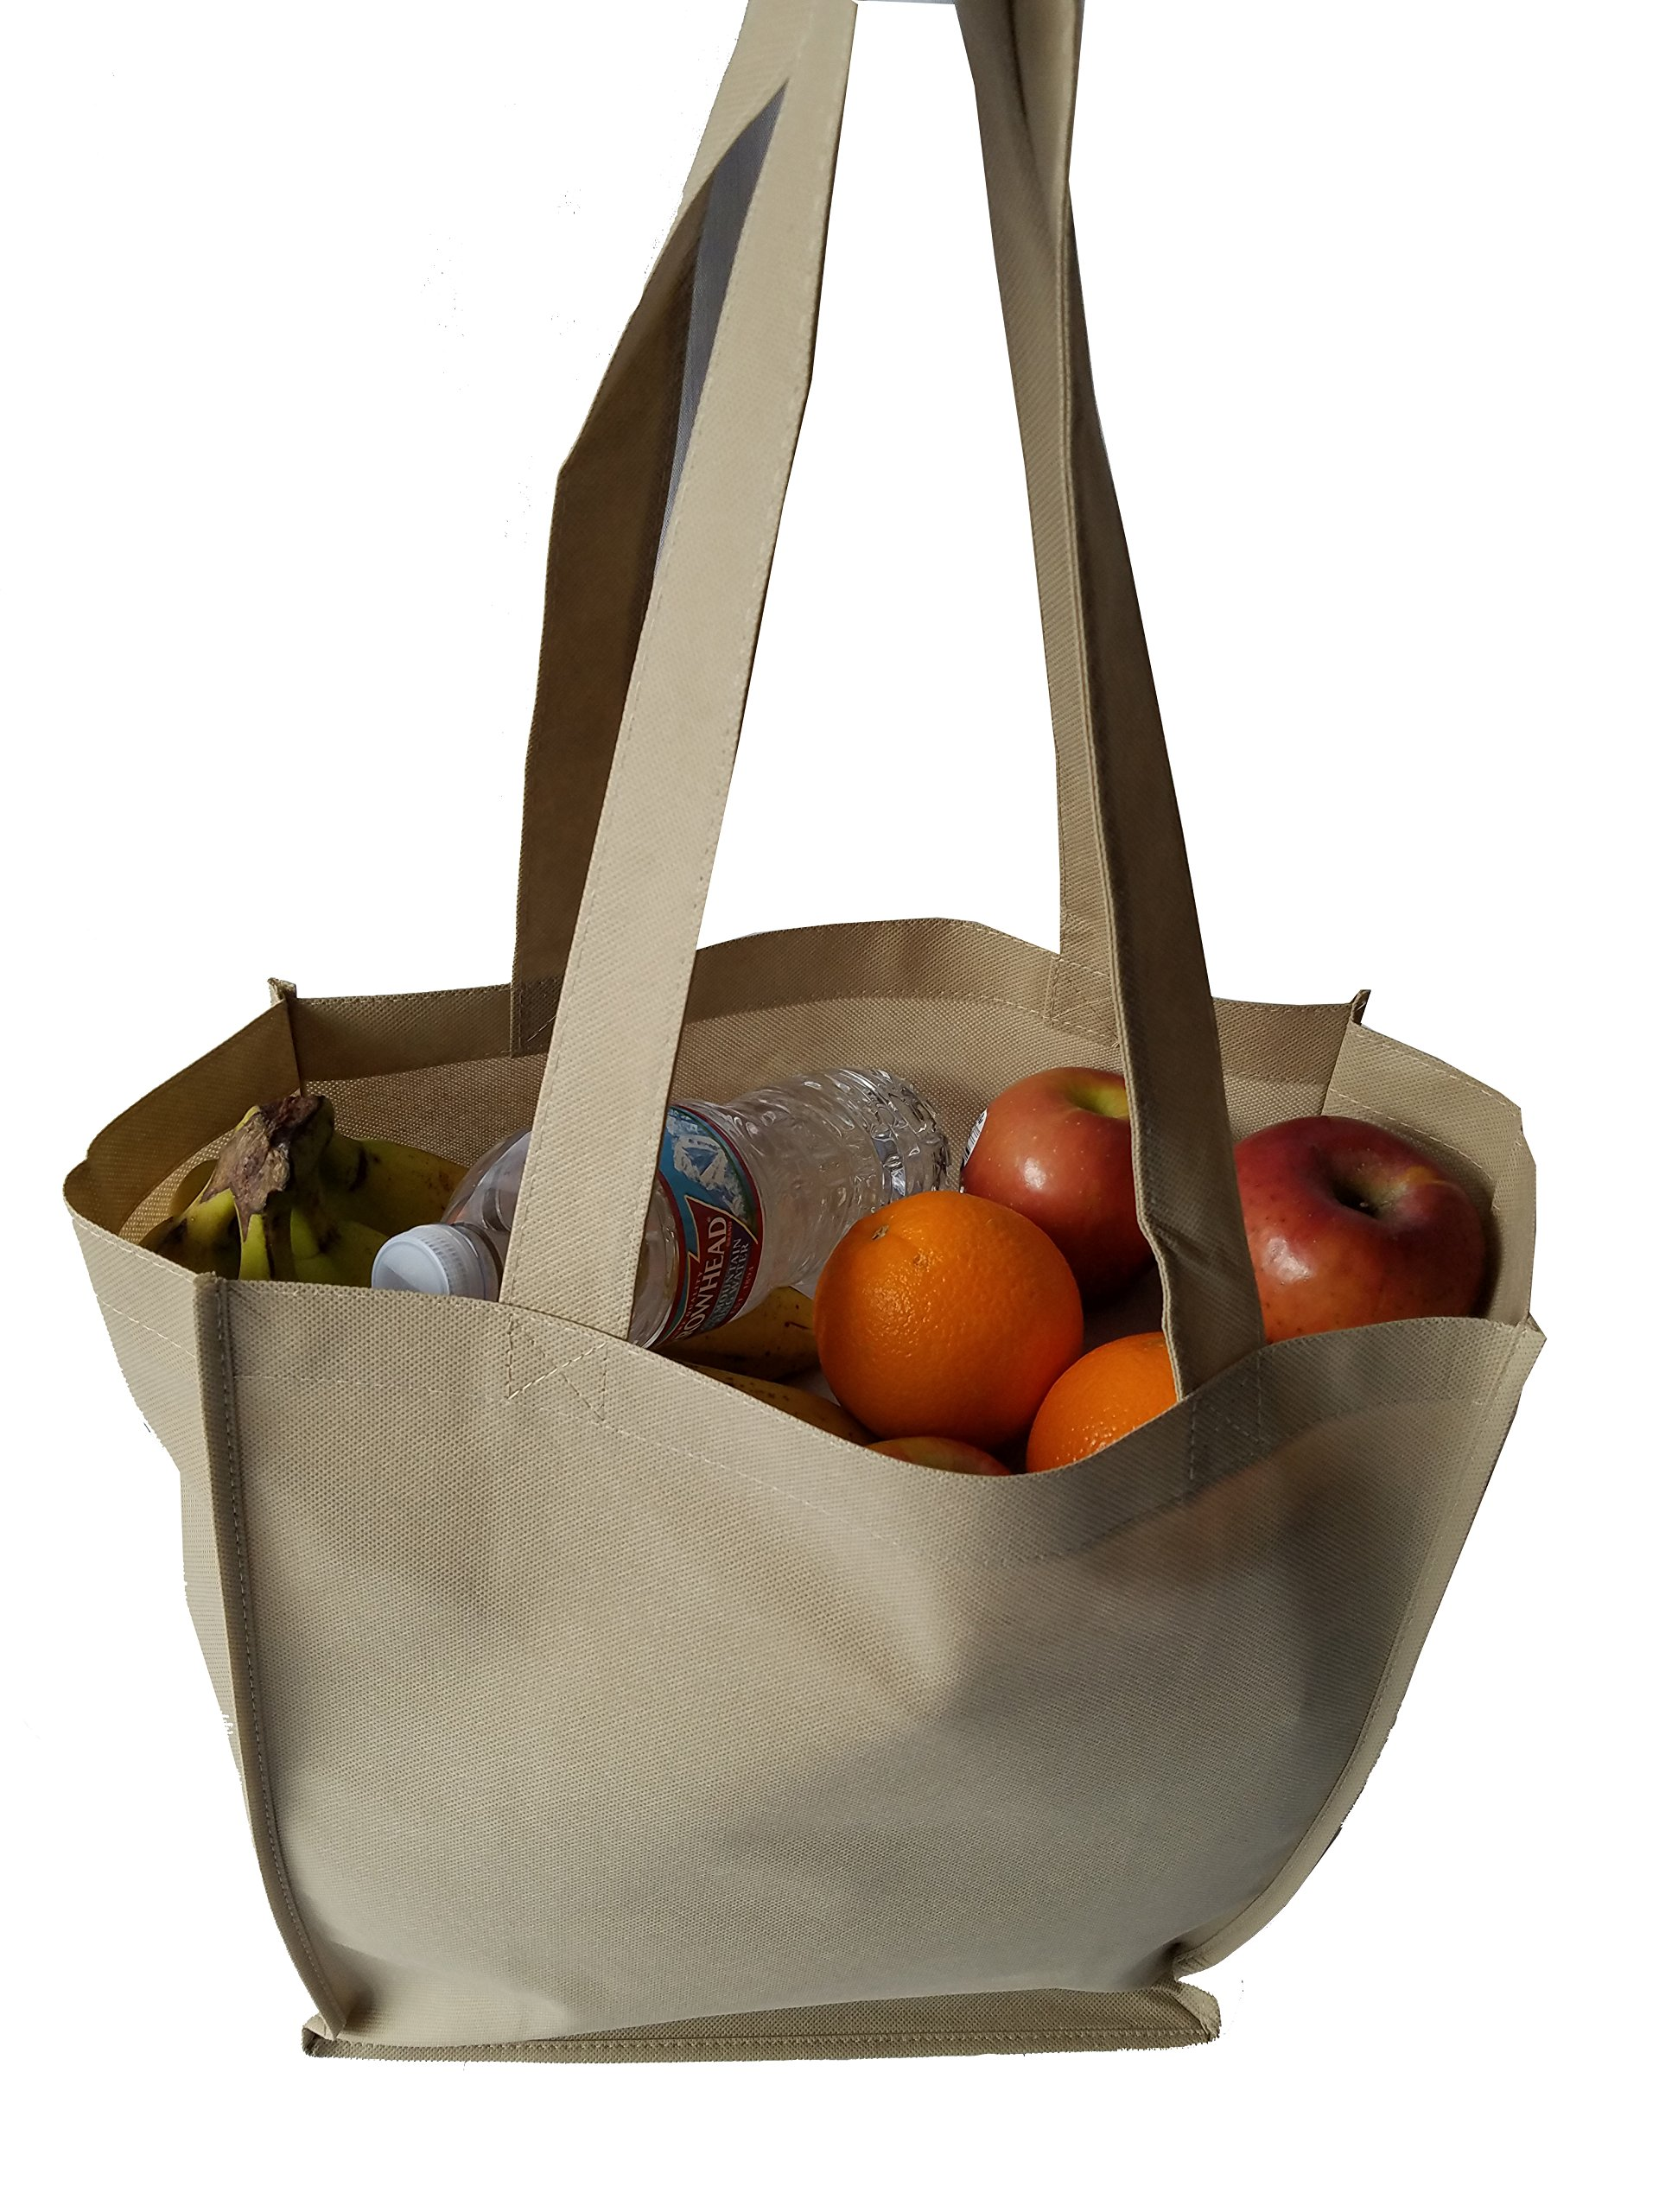 ImpecGear 15'' Tote W/ 6 Gusset Grocery Bag Recycled Reusable Shopping Tote Shoulder Bag Luggage (3, Natural) by ImpecGear (Image #3)